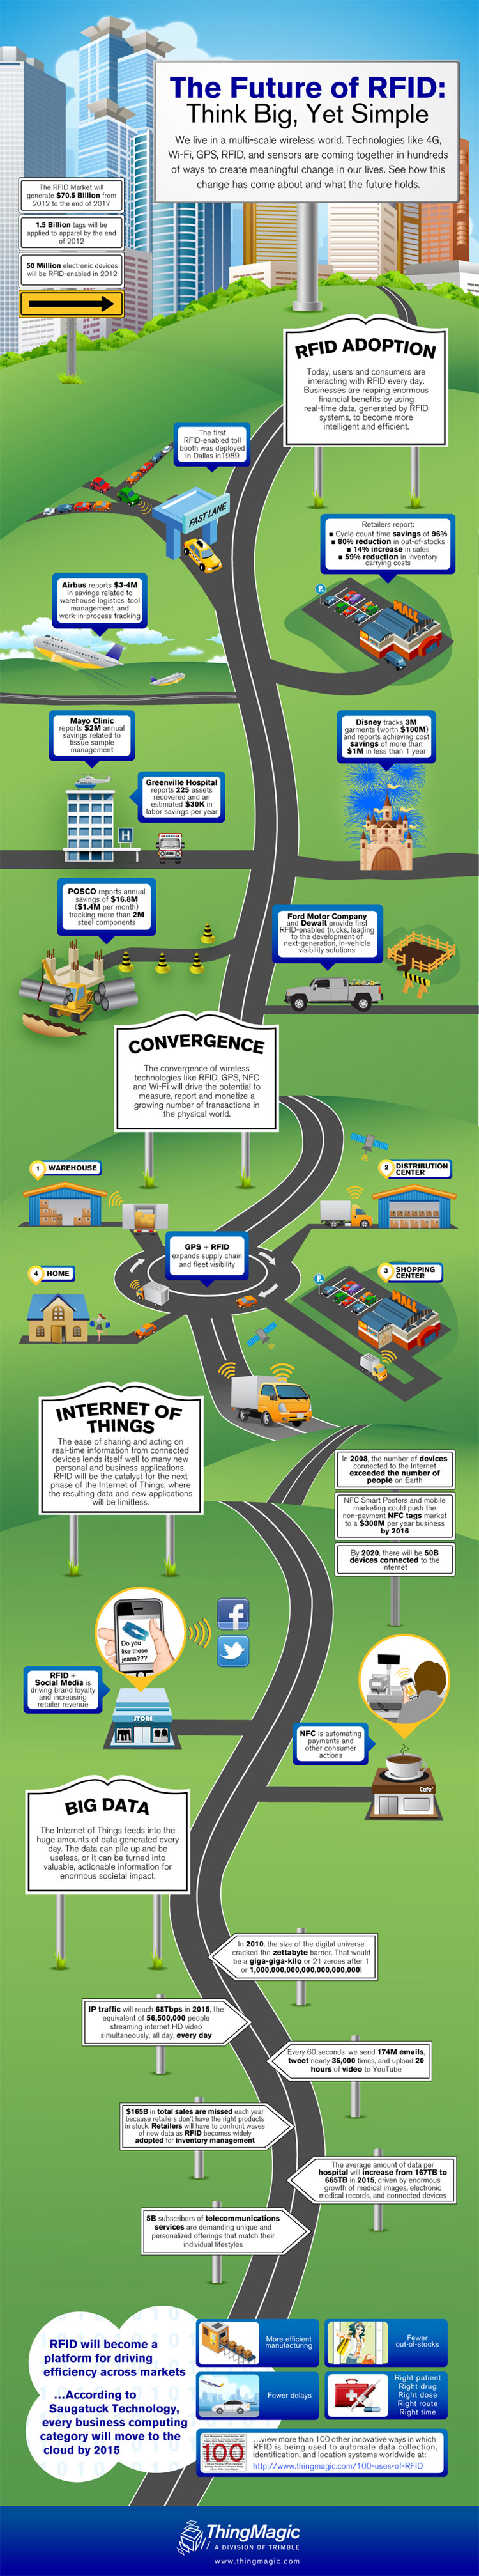 RFID Present and Future-Infographic